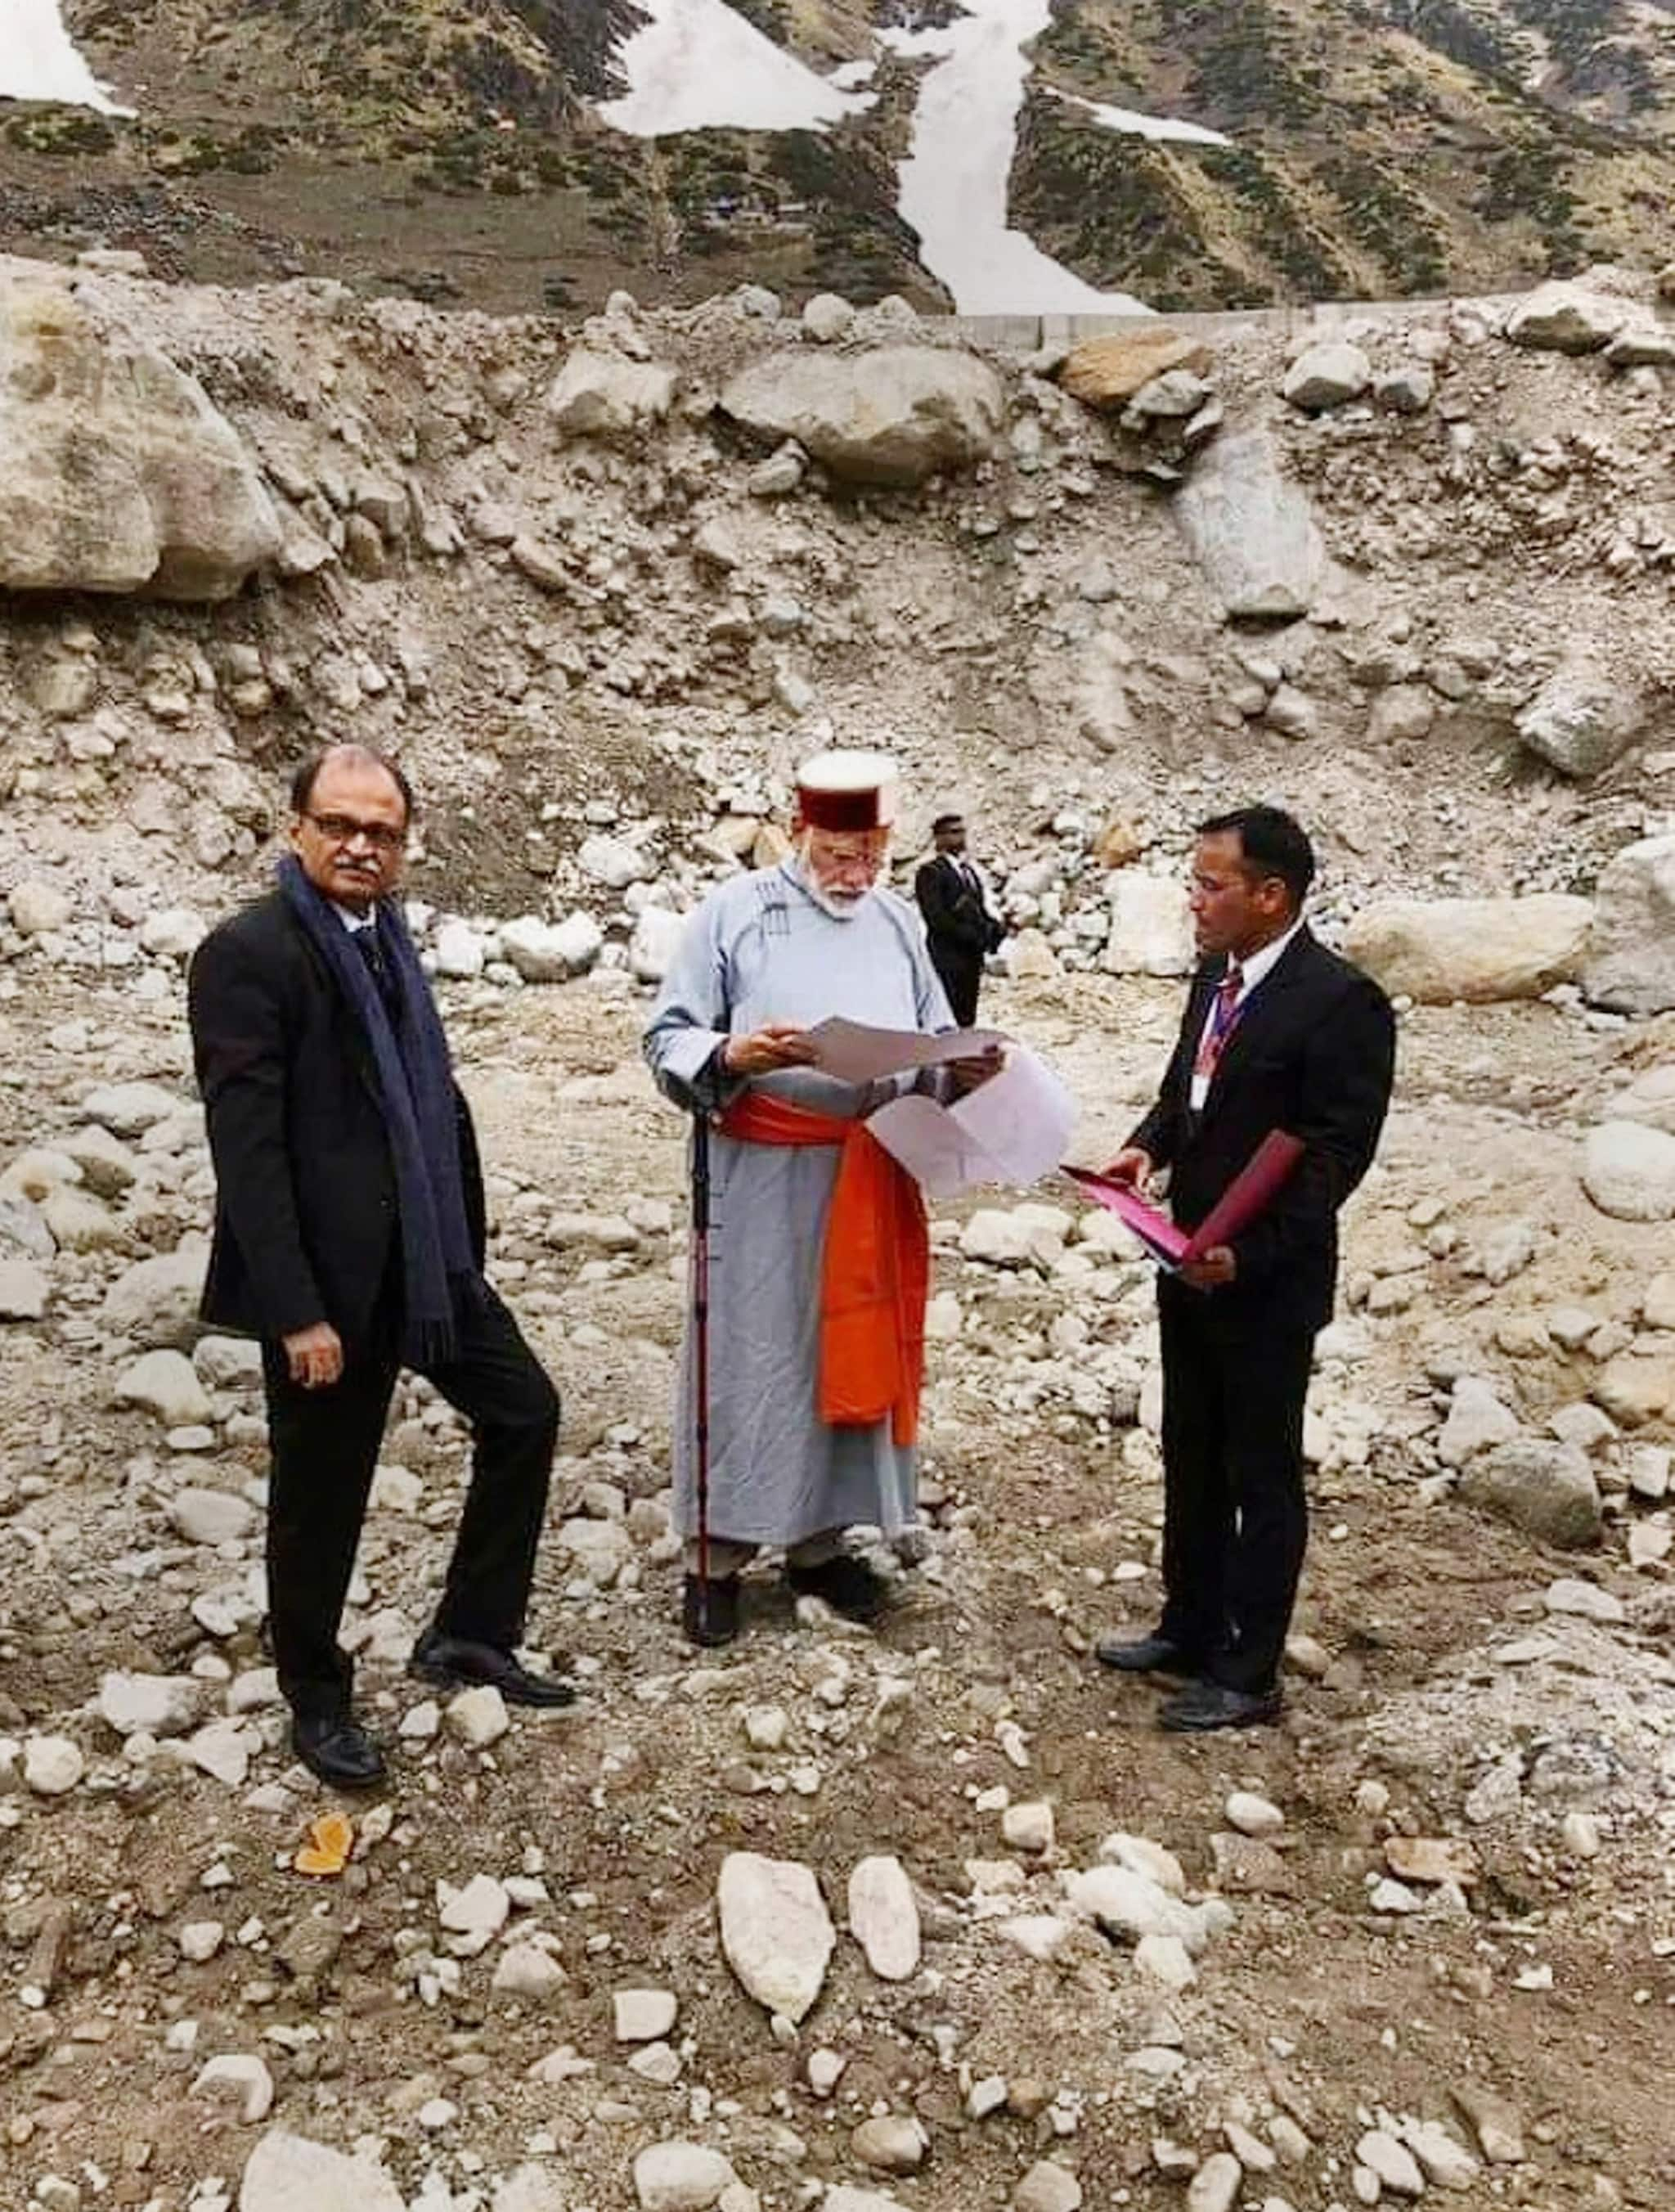 Kedarnath: Prime Minister Narendra Modi inspects reconstruction work on his arrival at Kedarnath, for this two day pilgrimage to Himalayan shrines, in Rudraprayag district, Saturday, May 18, 2019. PM Modi will visit Badrinath on Sunday. (PTI Photo)(PTI5_18_2019_000037B)